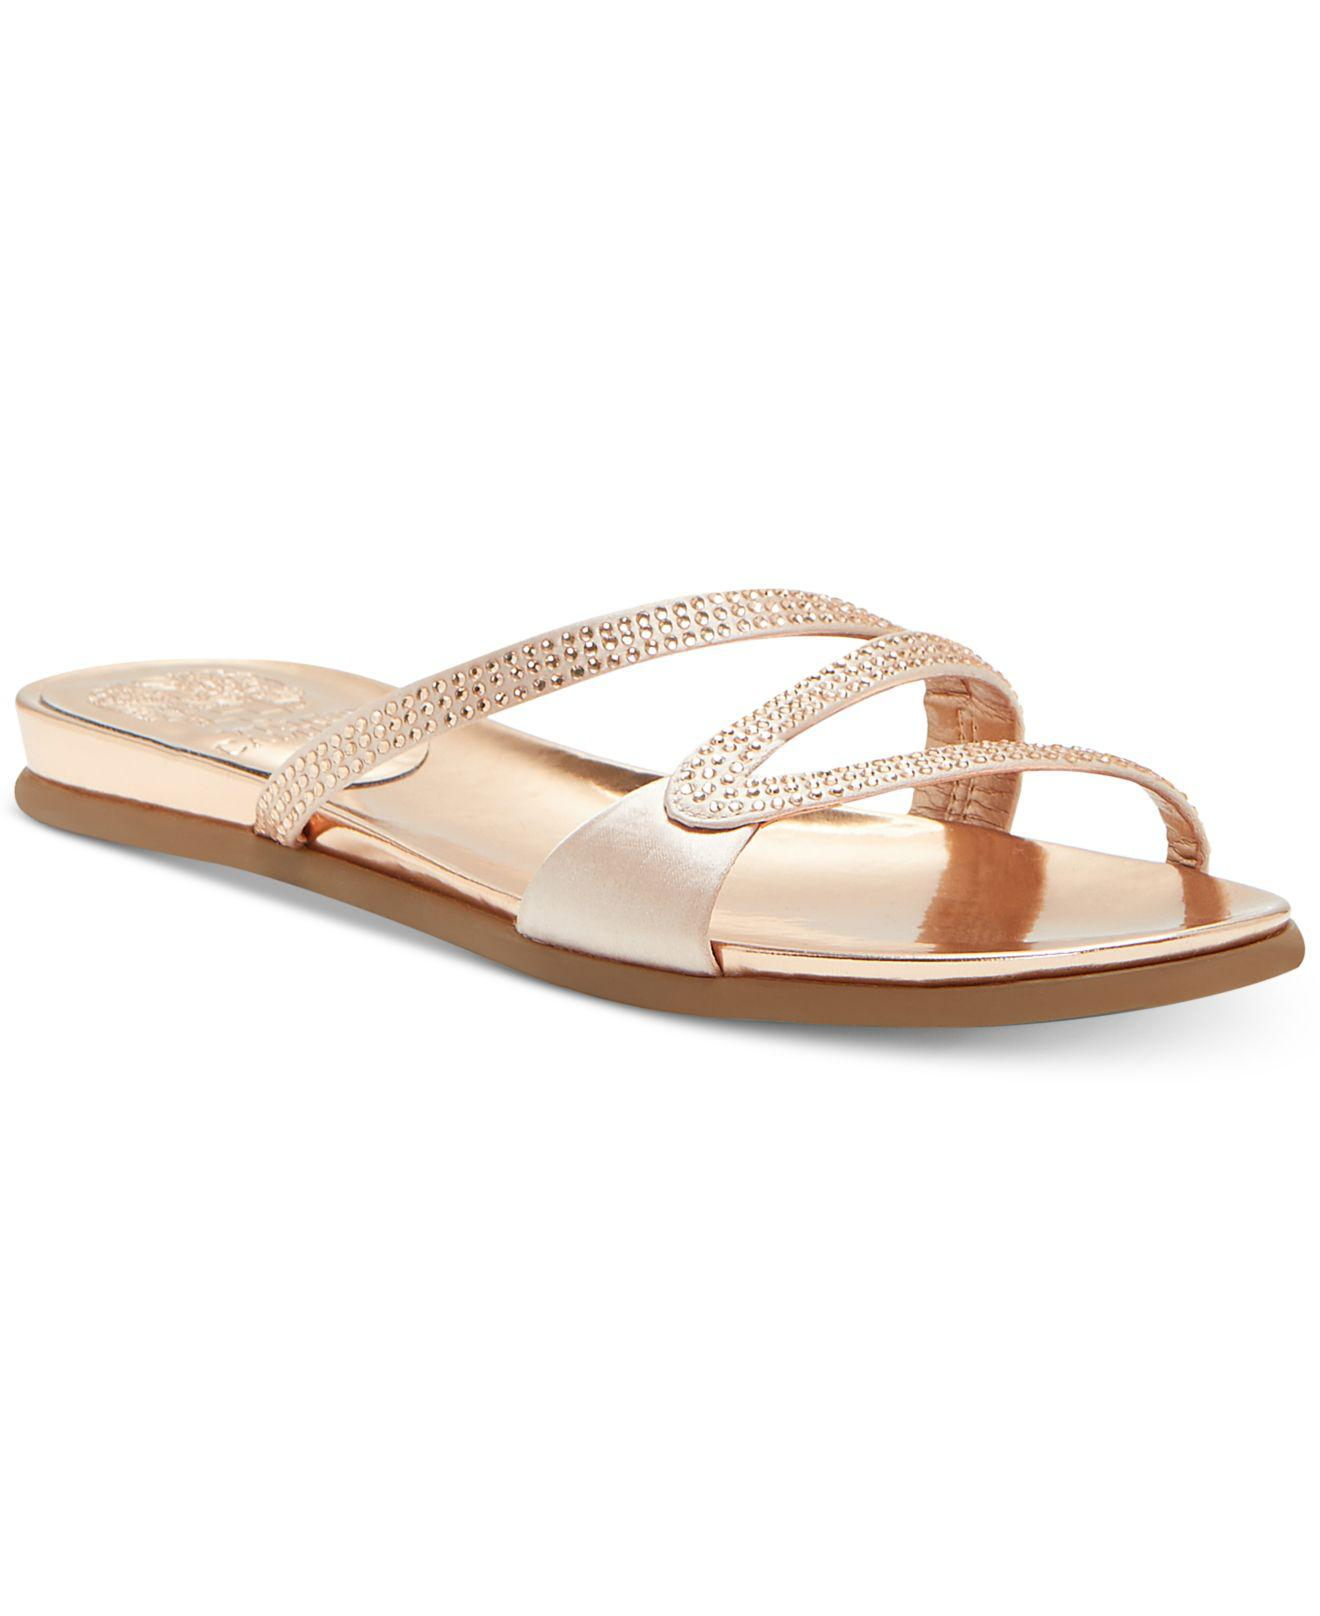 Vince Camuto Elouisa Jeweled Satin Sandals WxZF0wmupj